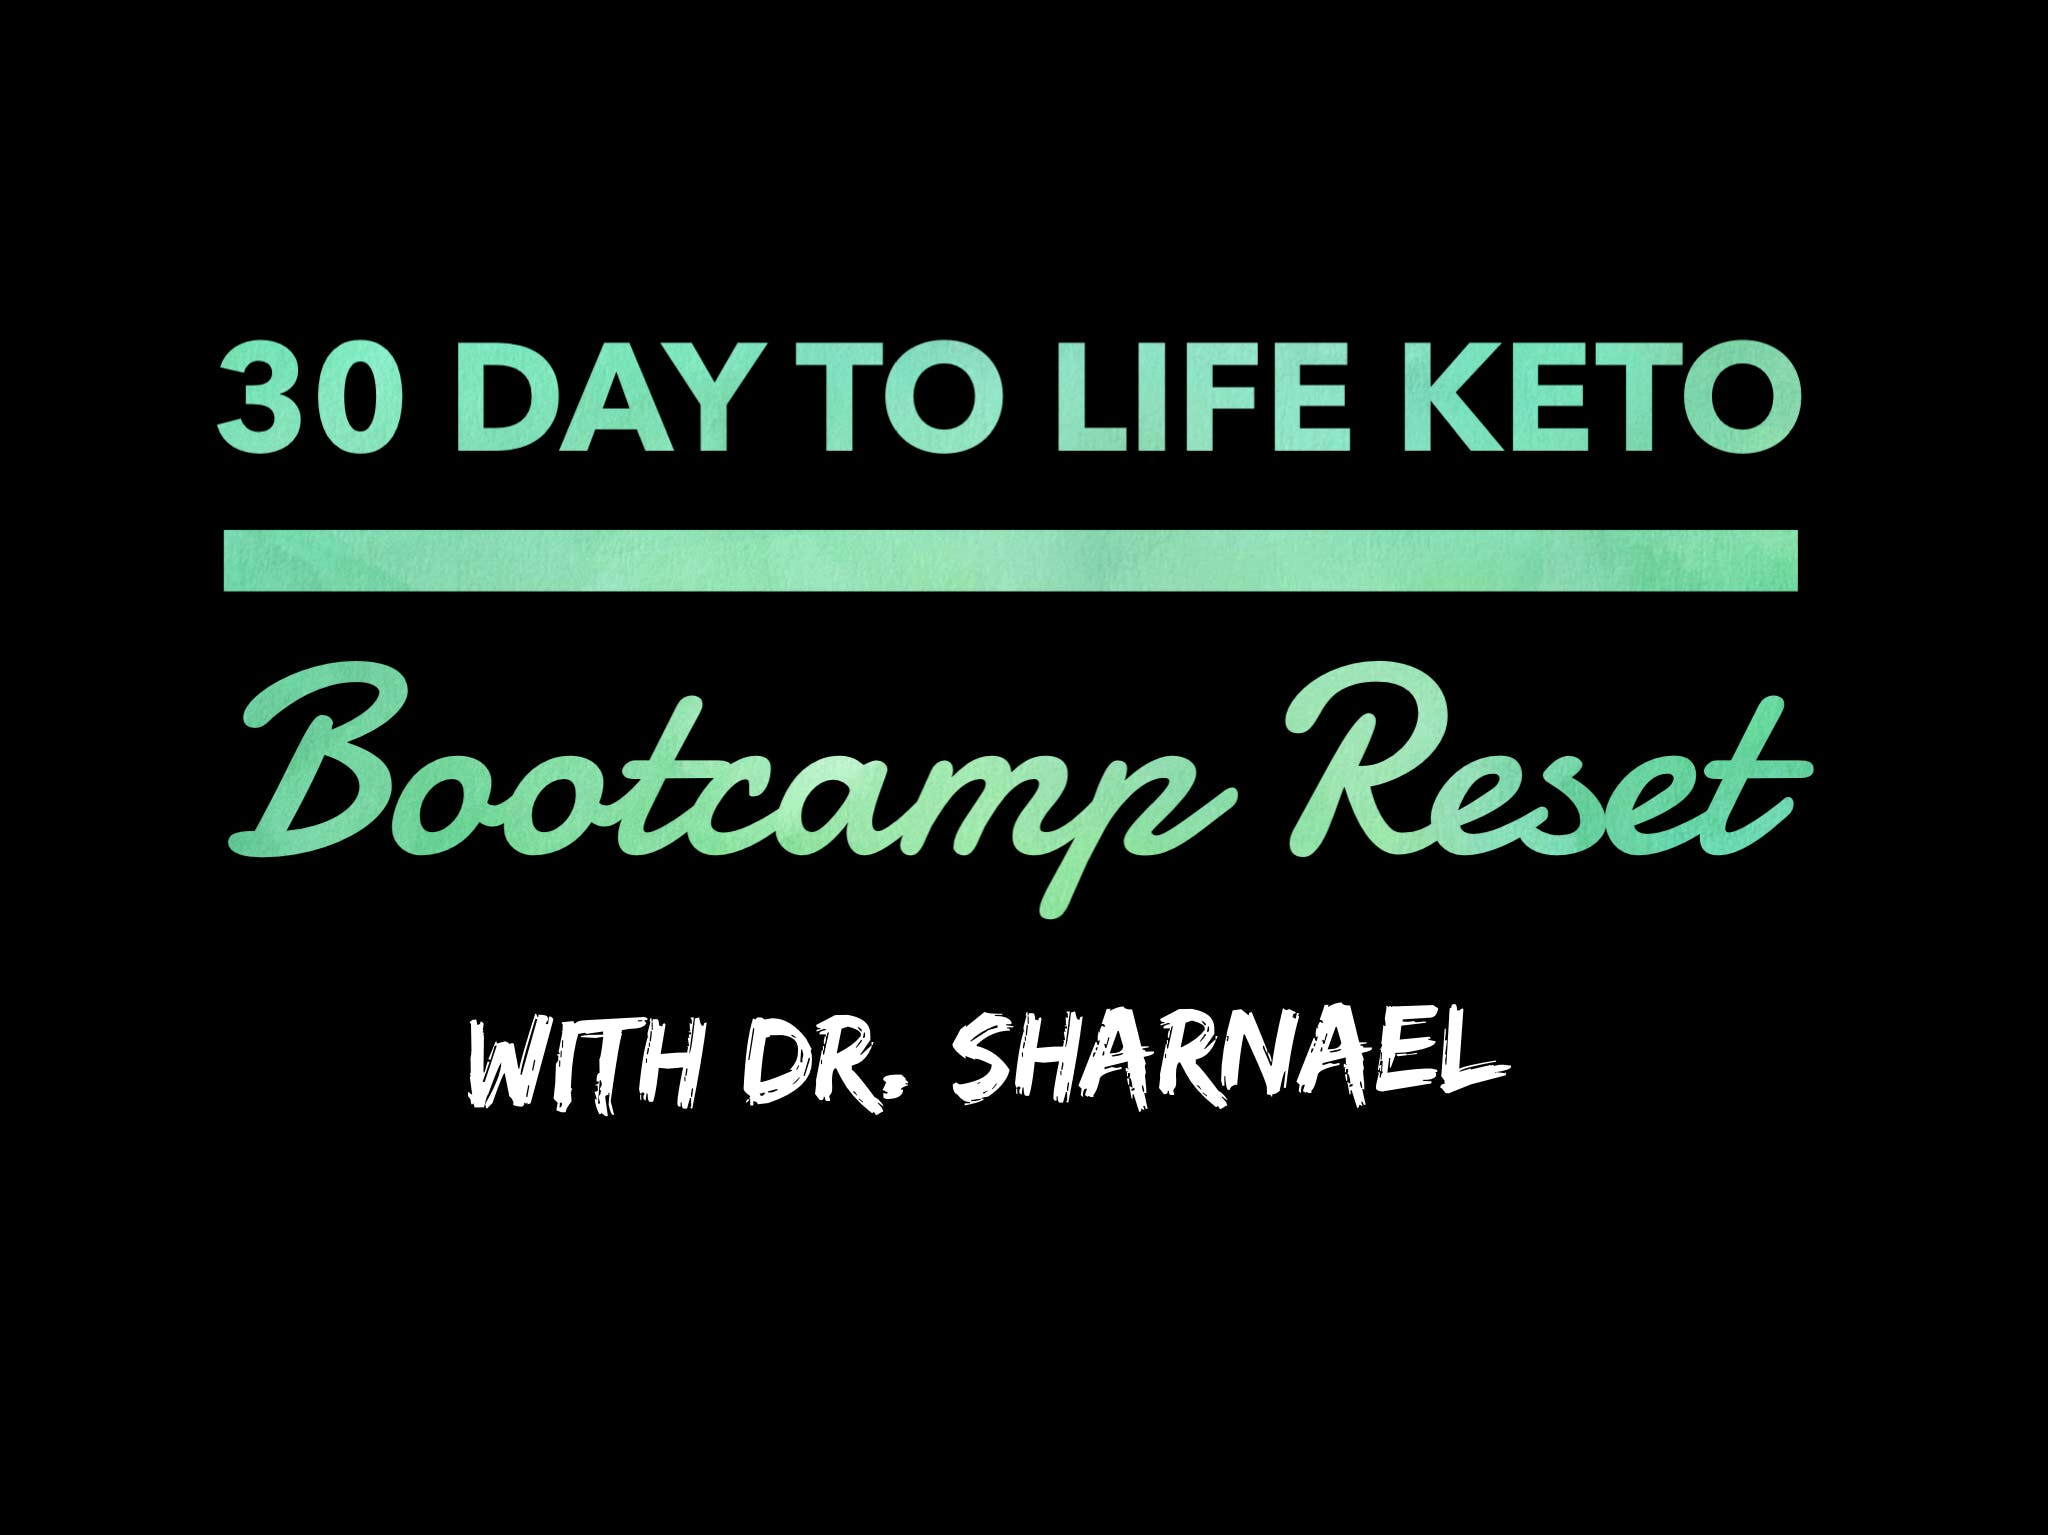 30 Day Keto to Life Bootcamp Reset Membership